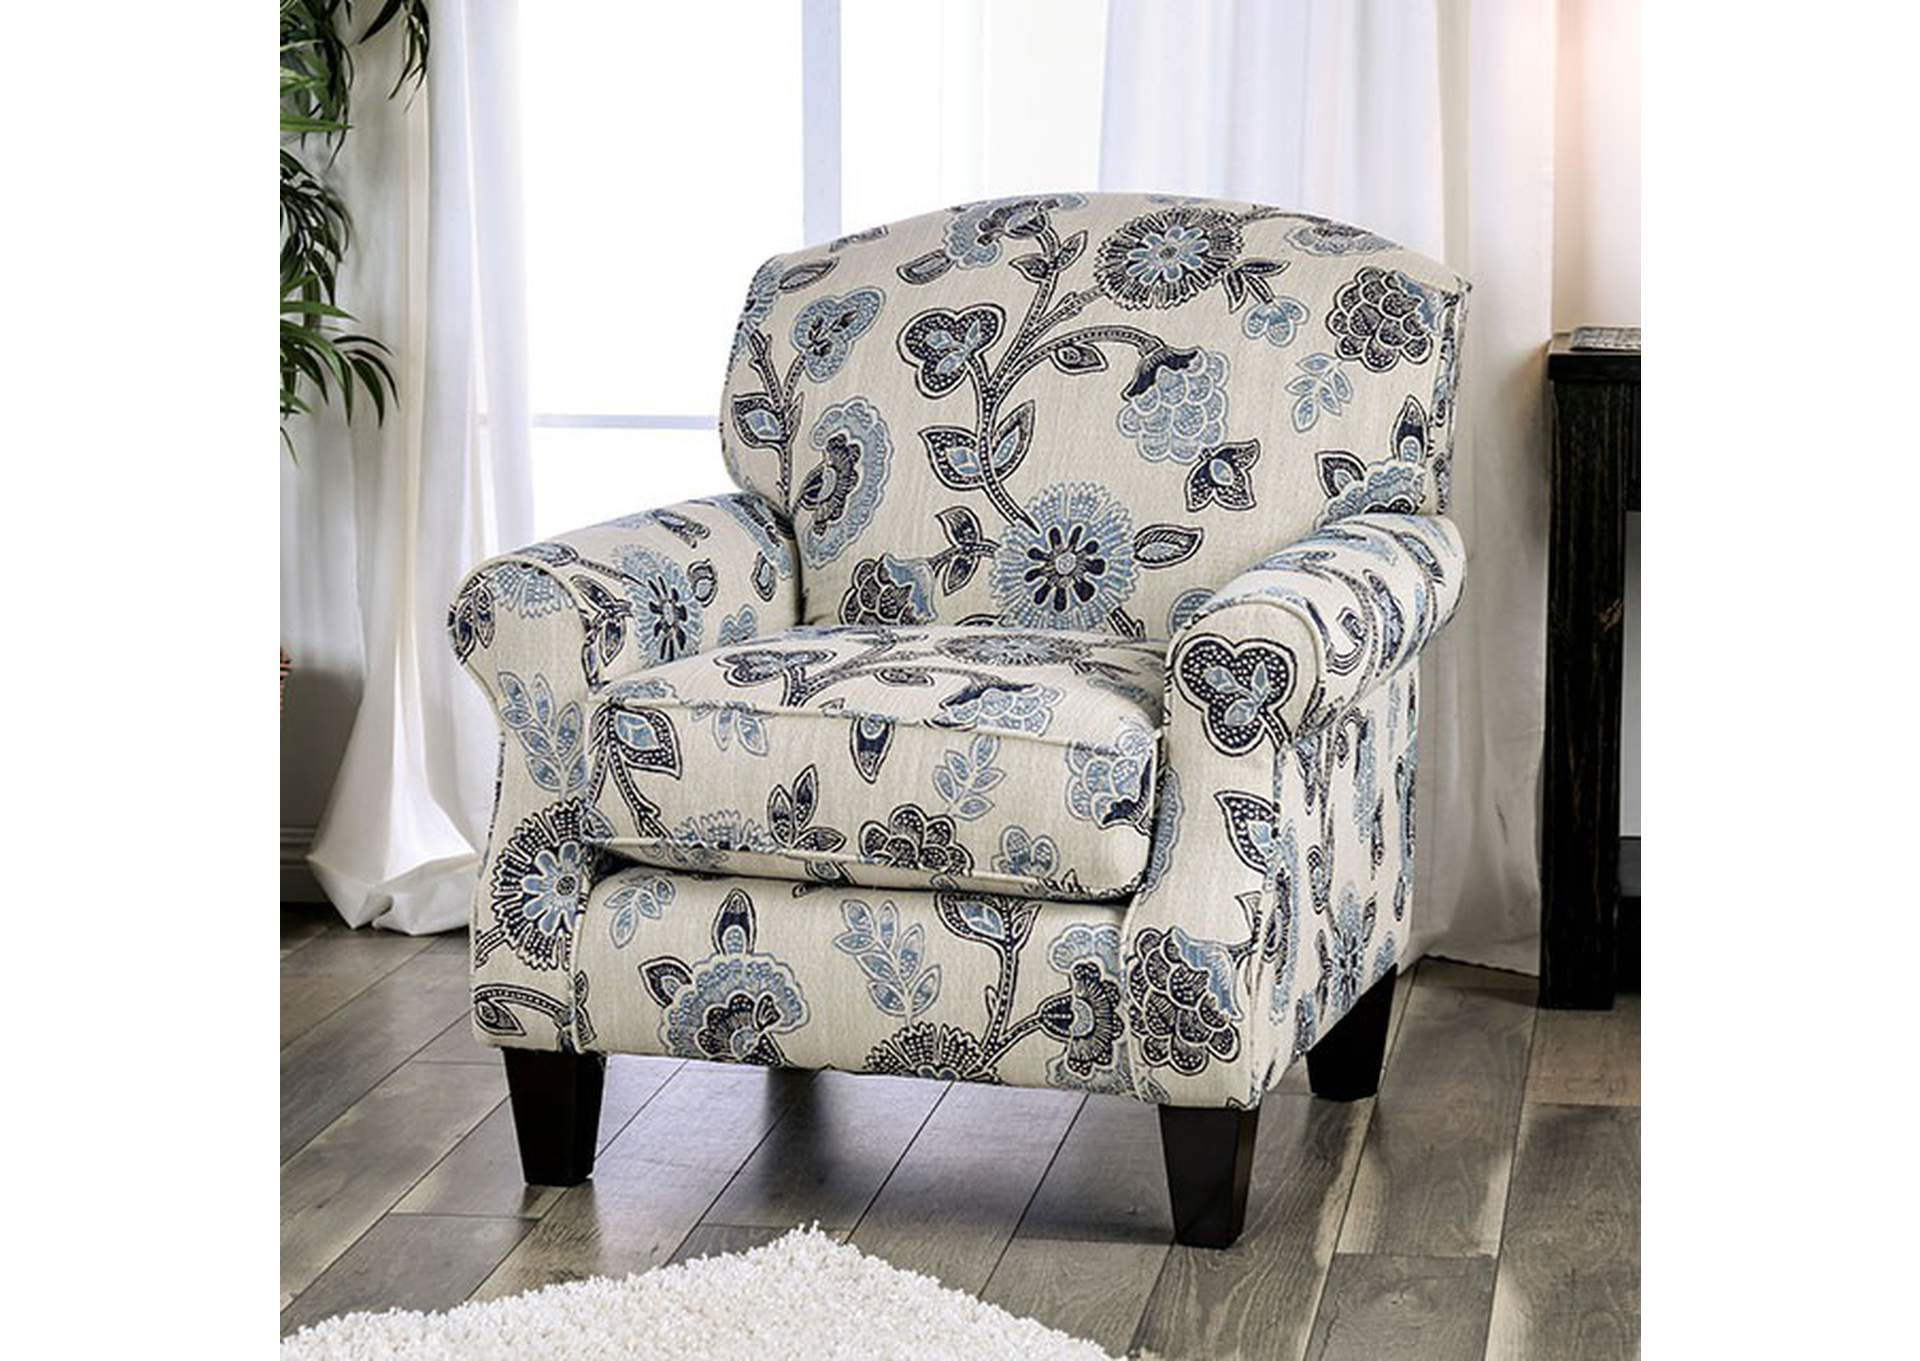 Nash Blue/Black Floral Chair,Furniture of America